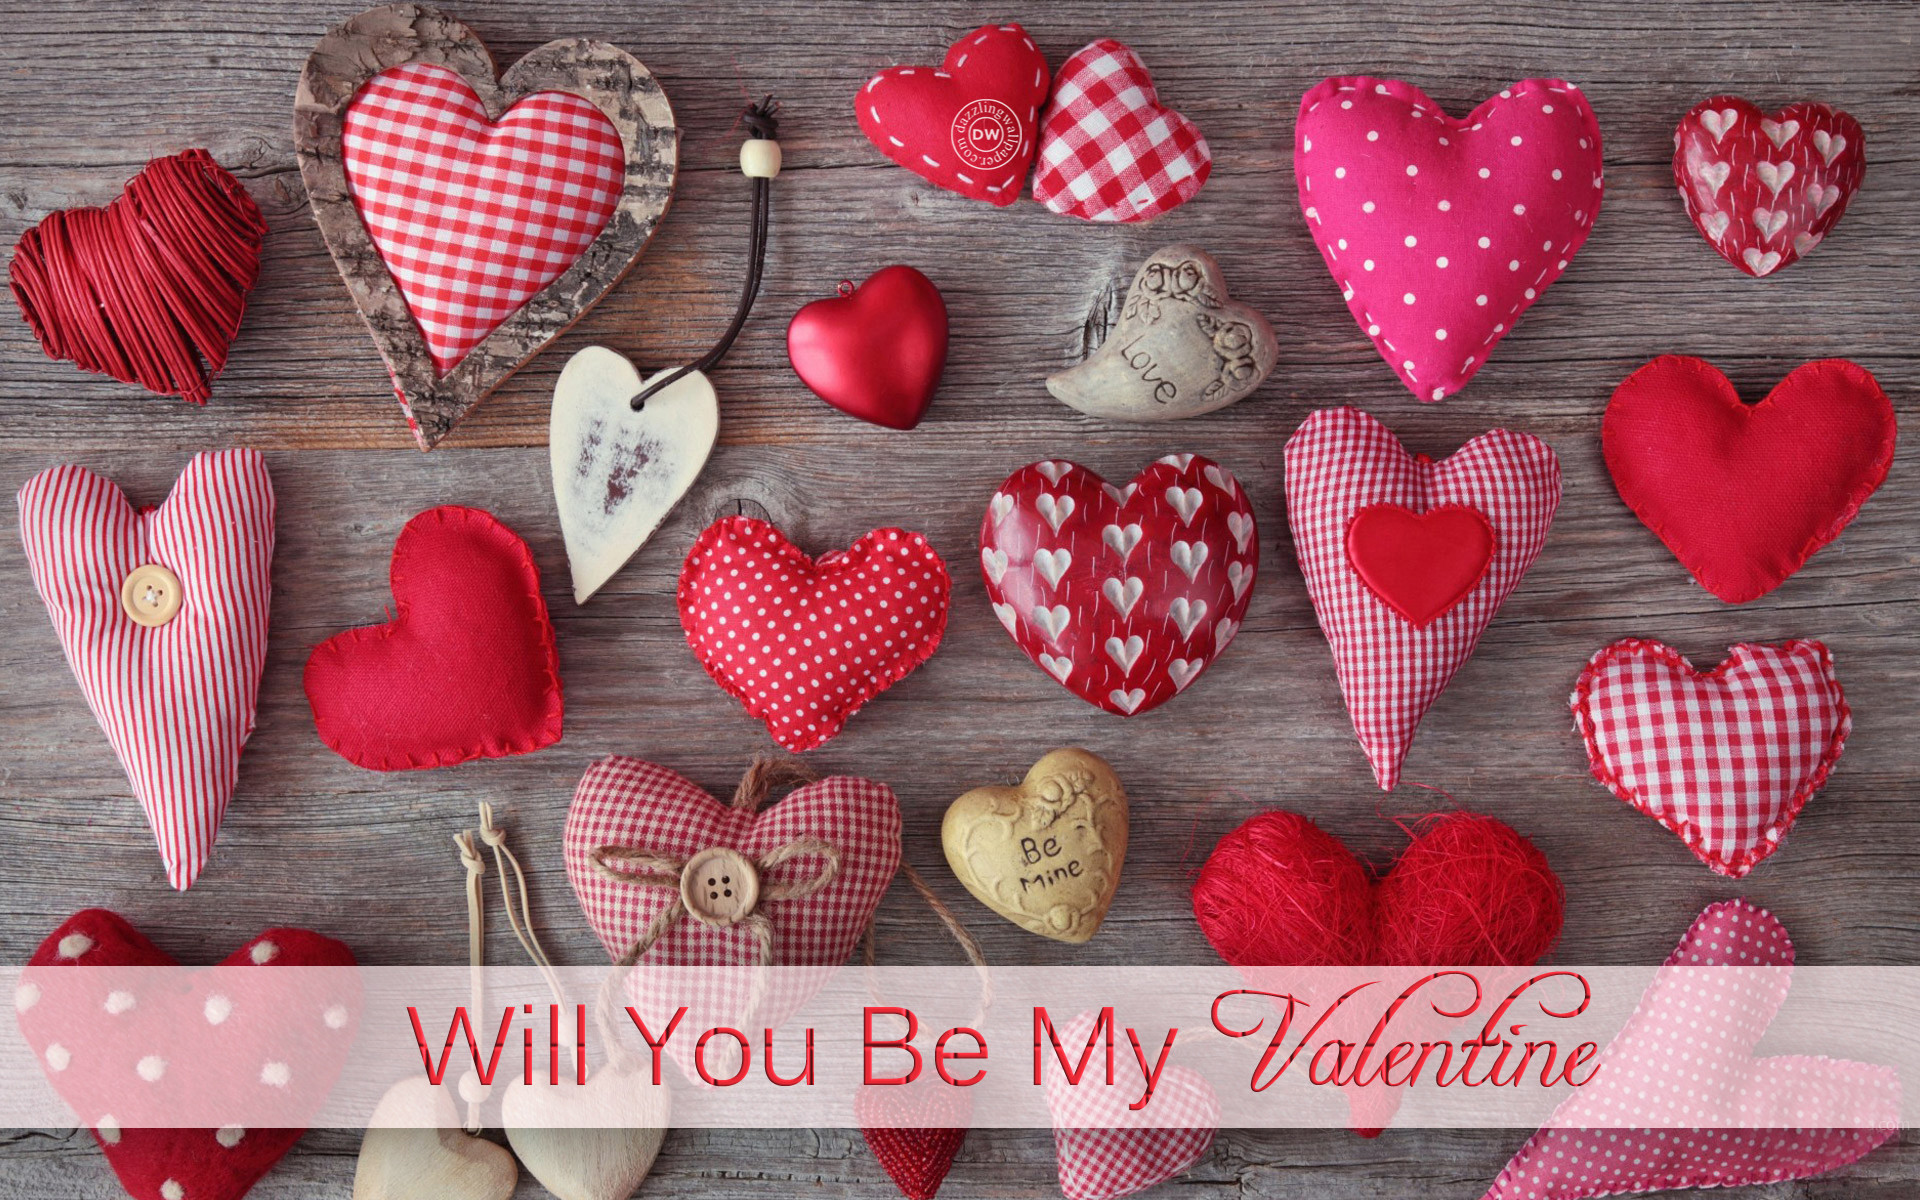 Cute Love Valentine Day Wallpaper Background Wallpaper with .